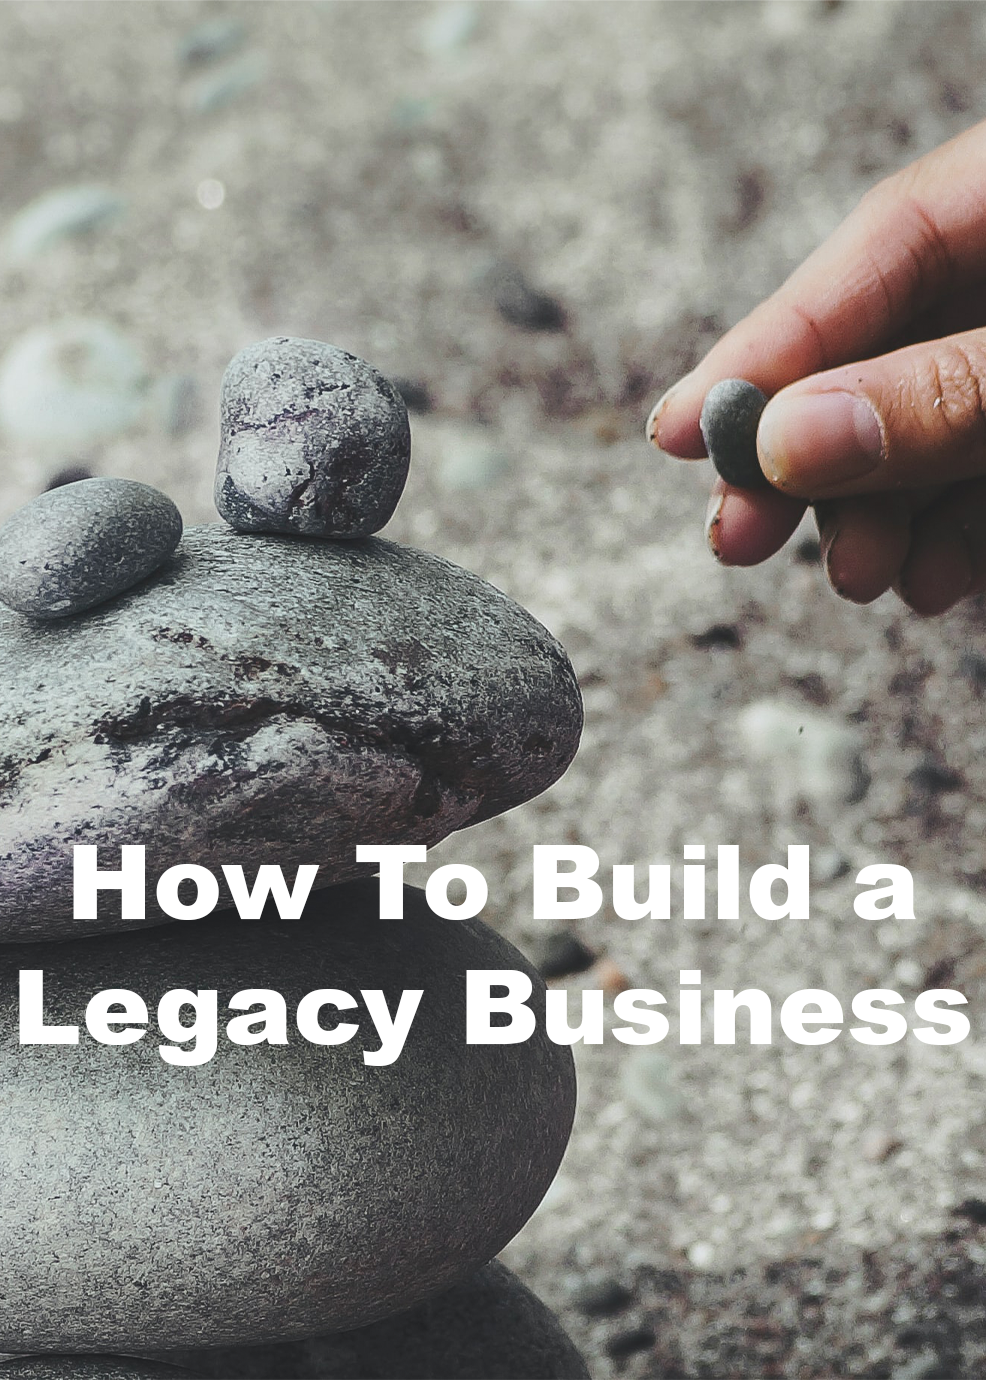 How To Build a Legacy Business